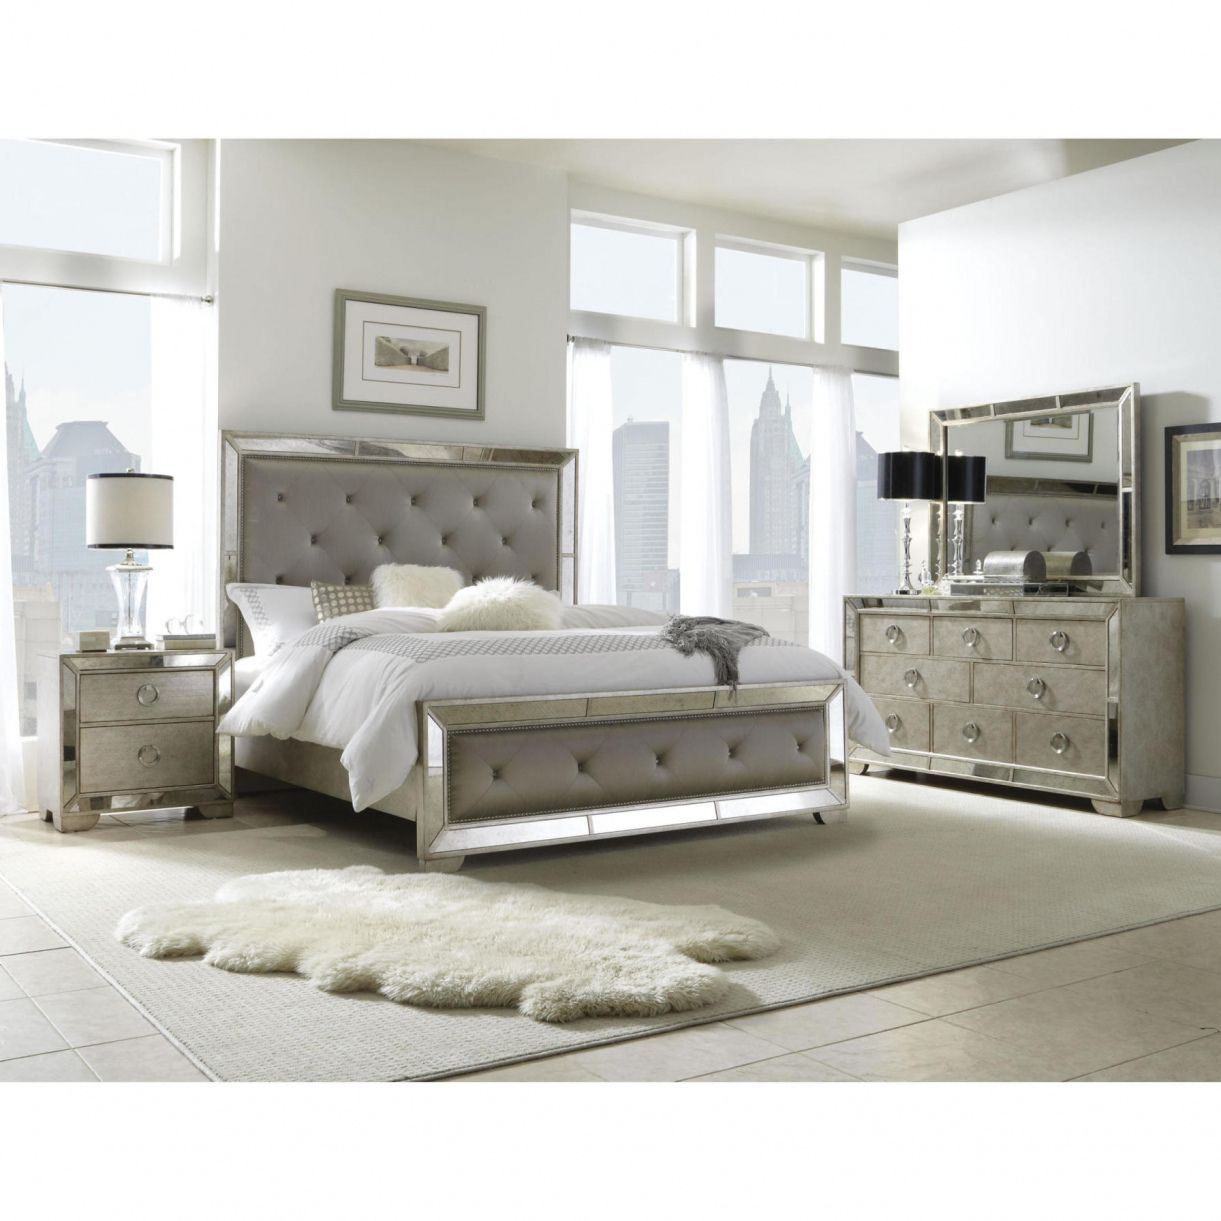 Mirrored Glass Bedroom Furniture Favorite Interior Paint Colors Check More At Http Www Magi Queen Sized Bedroom Sets Mirrored Bedroom Furniture Bedroom Set